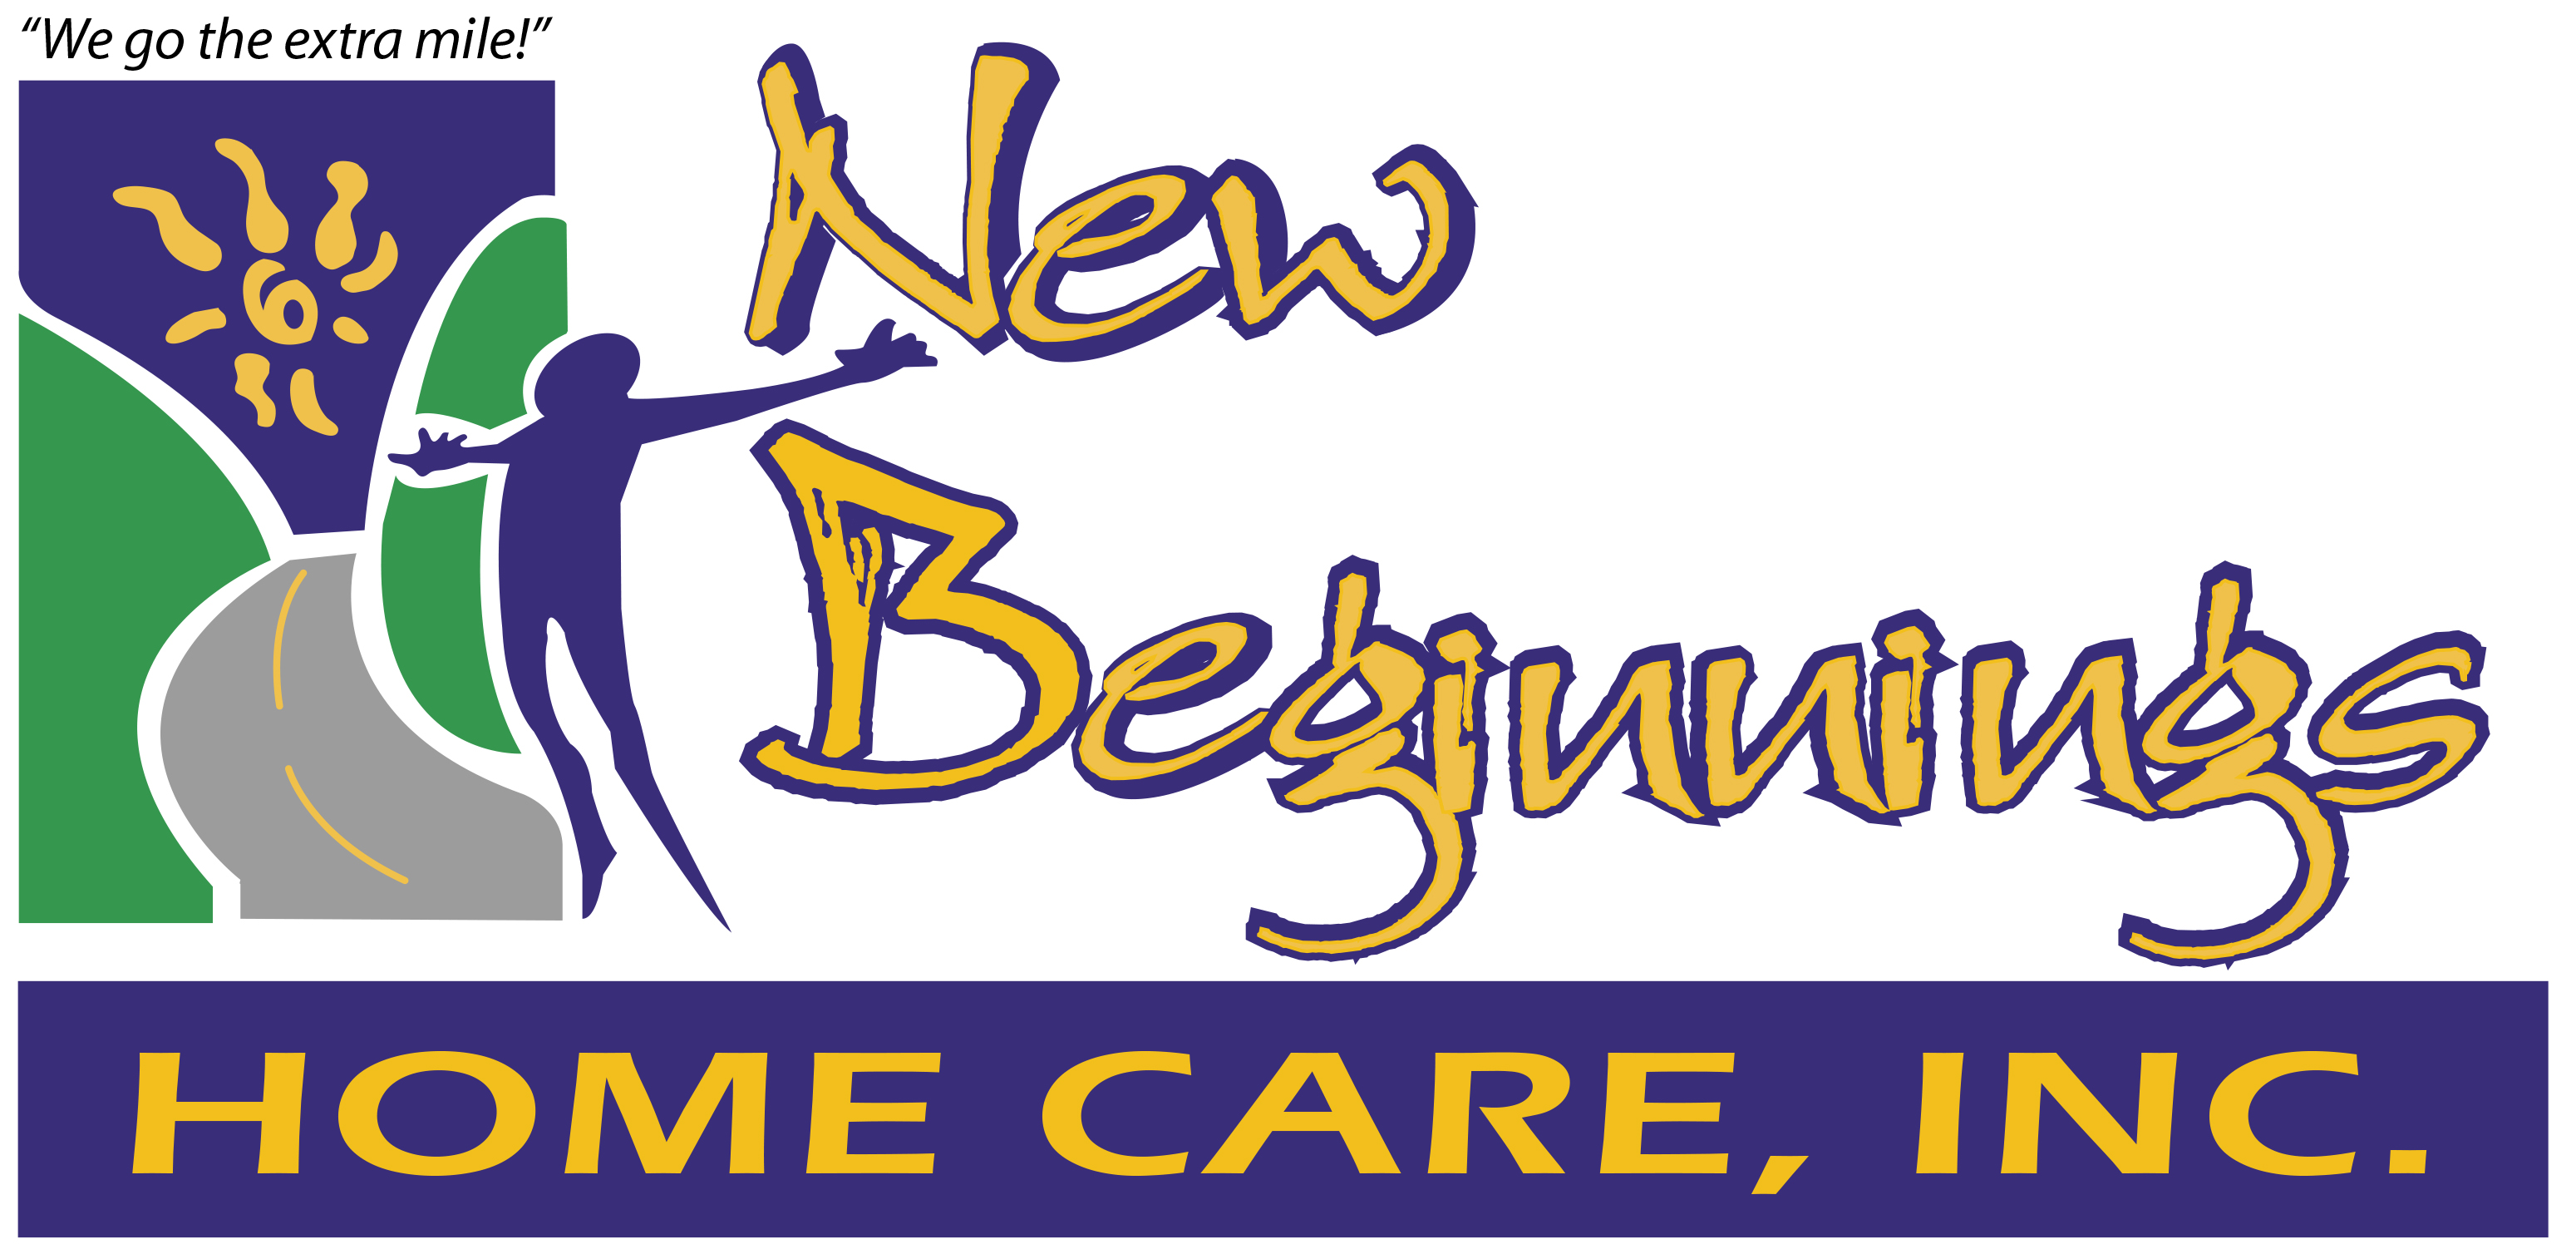 New Beginnings Home Care, Inc.